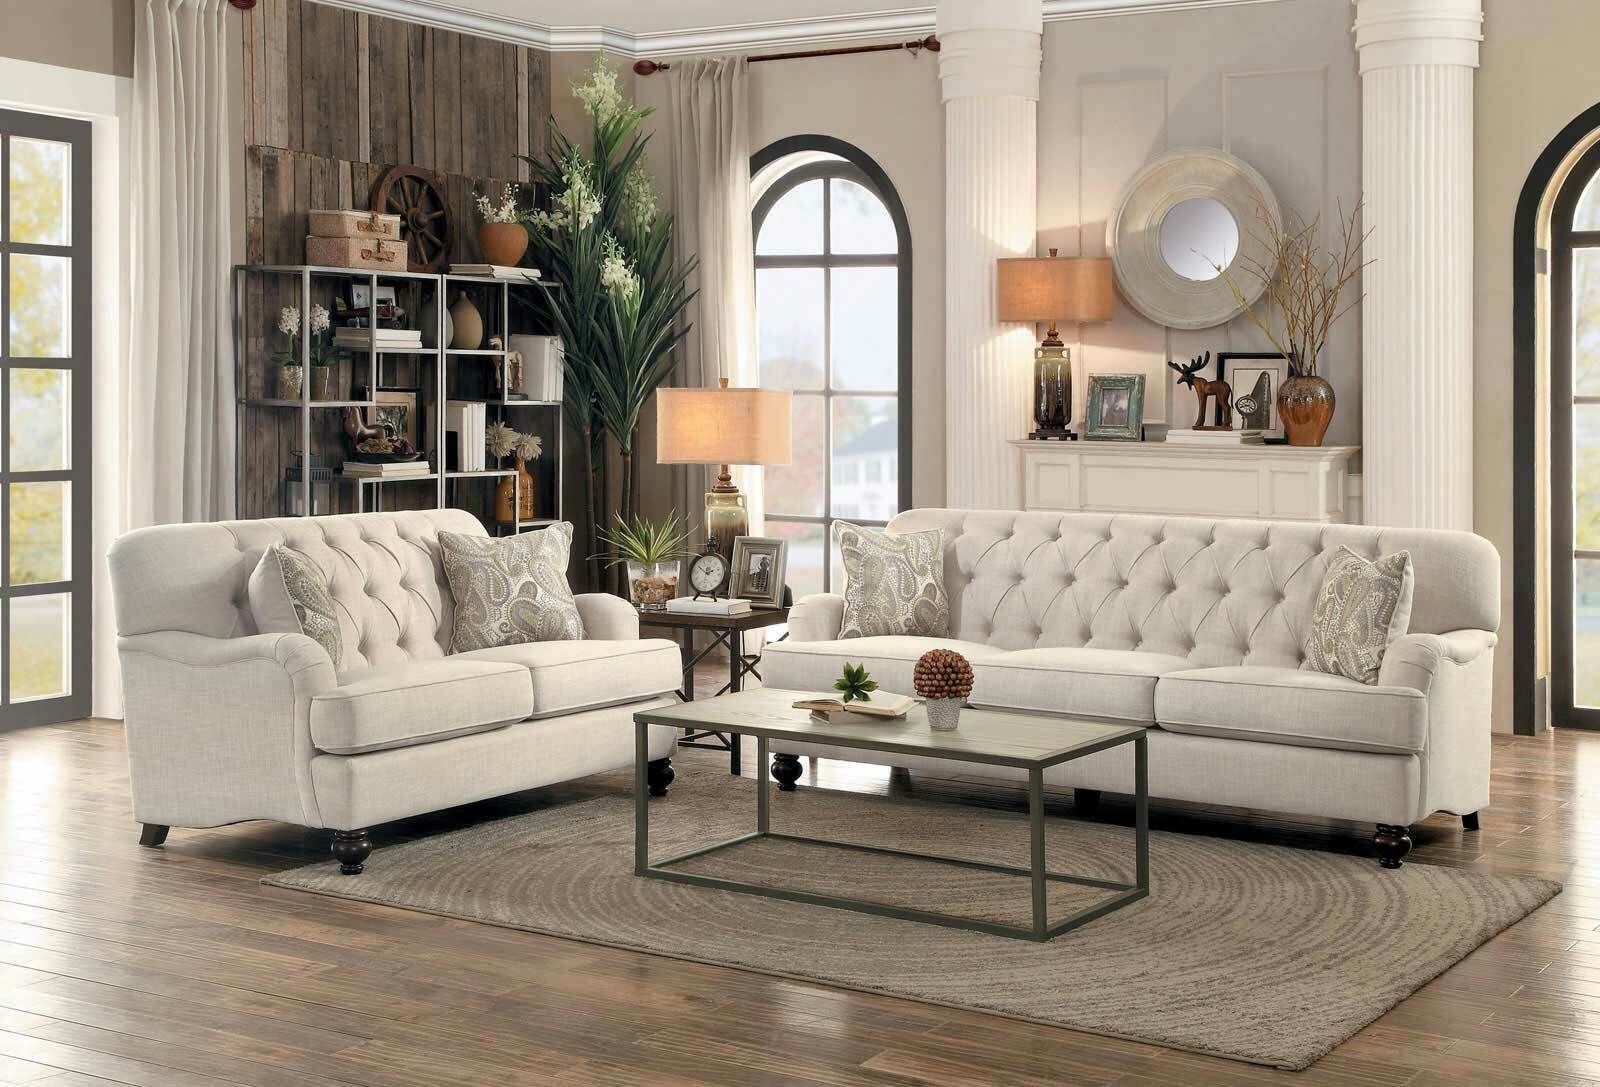 Traditional Living Family Room Couch Set Large Beige Fabric Sofa Loveseat Ig5n Tradition In 2020 Chaise Lounge Living Room Family Room Couch Living Room Sofa Set